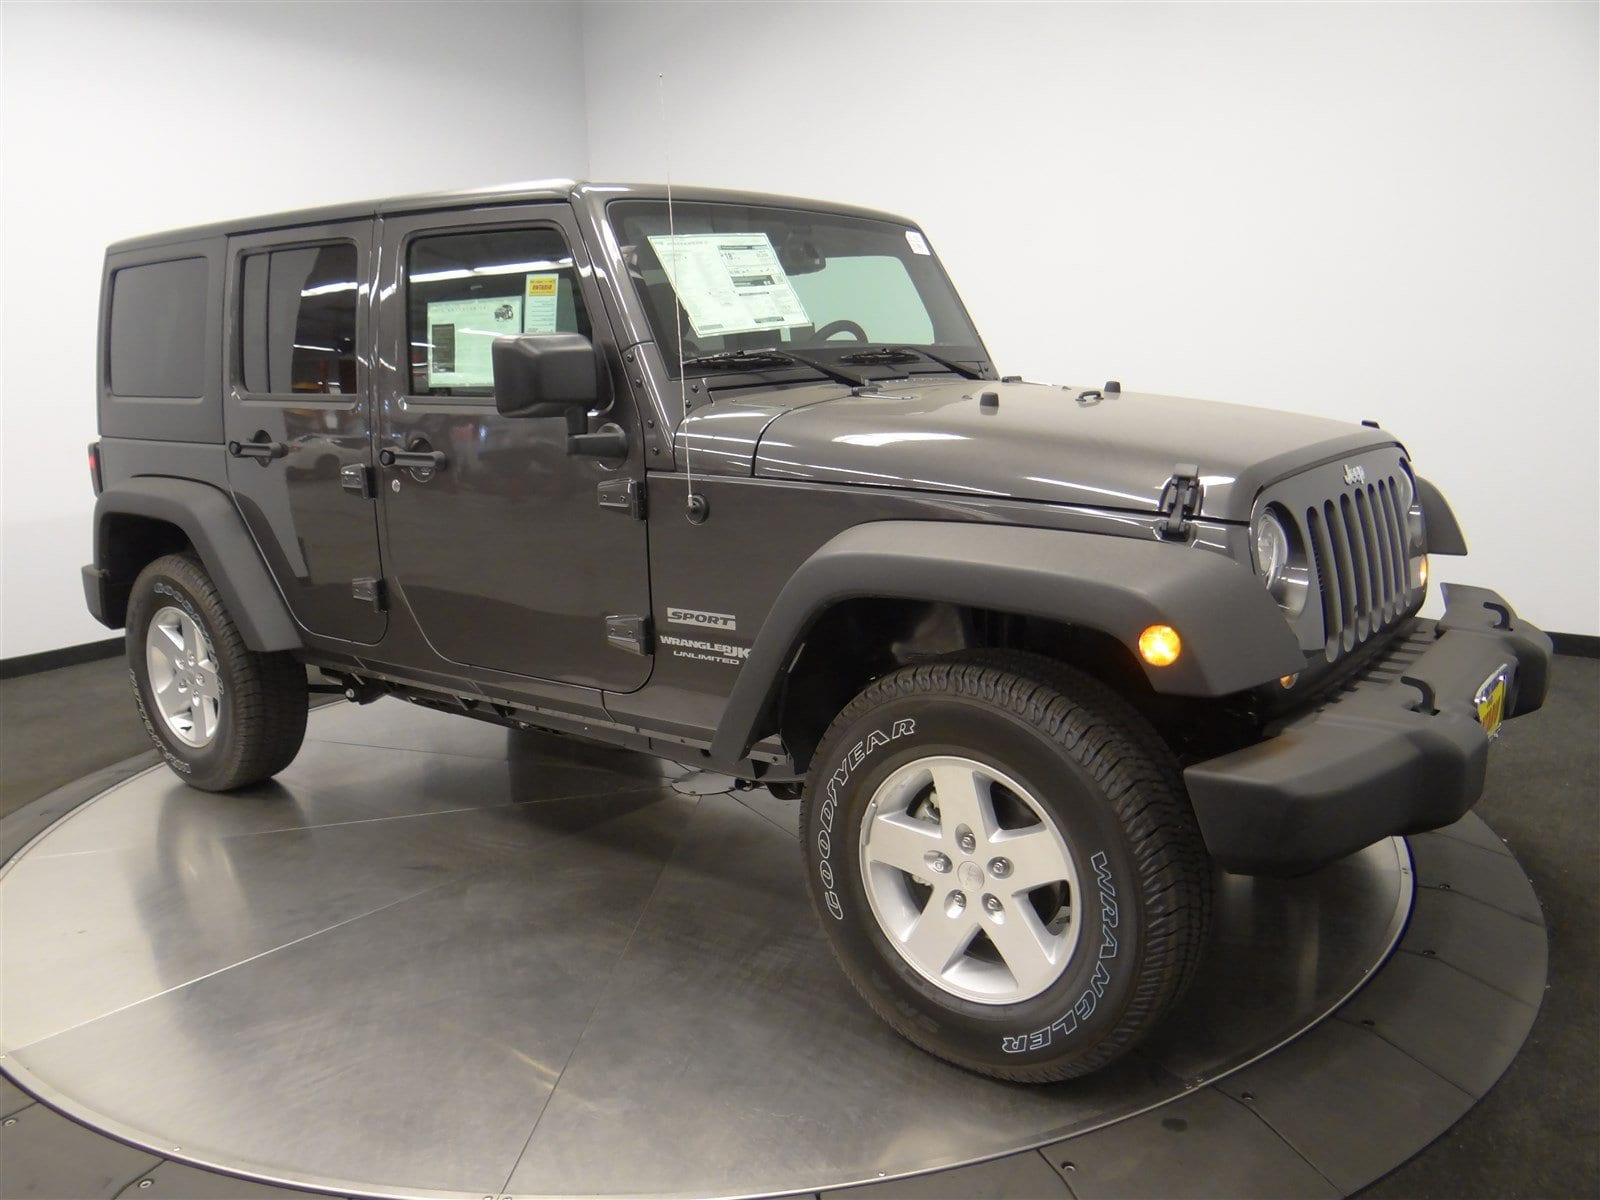 Jeep Used Cars Lovely Featured Used Cars for Sale